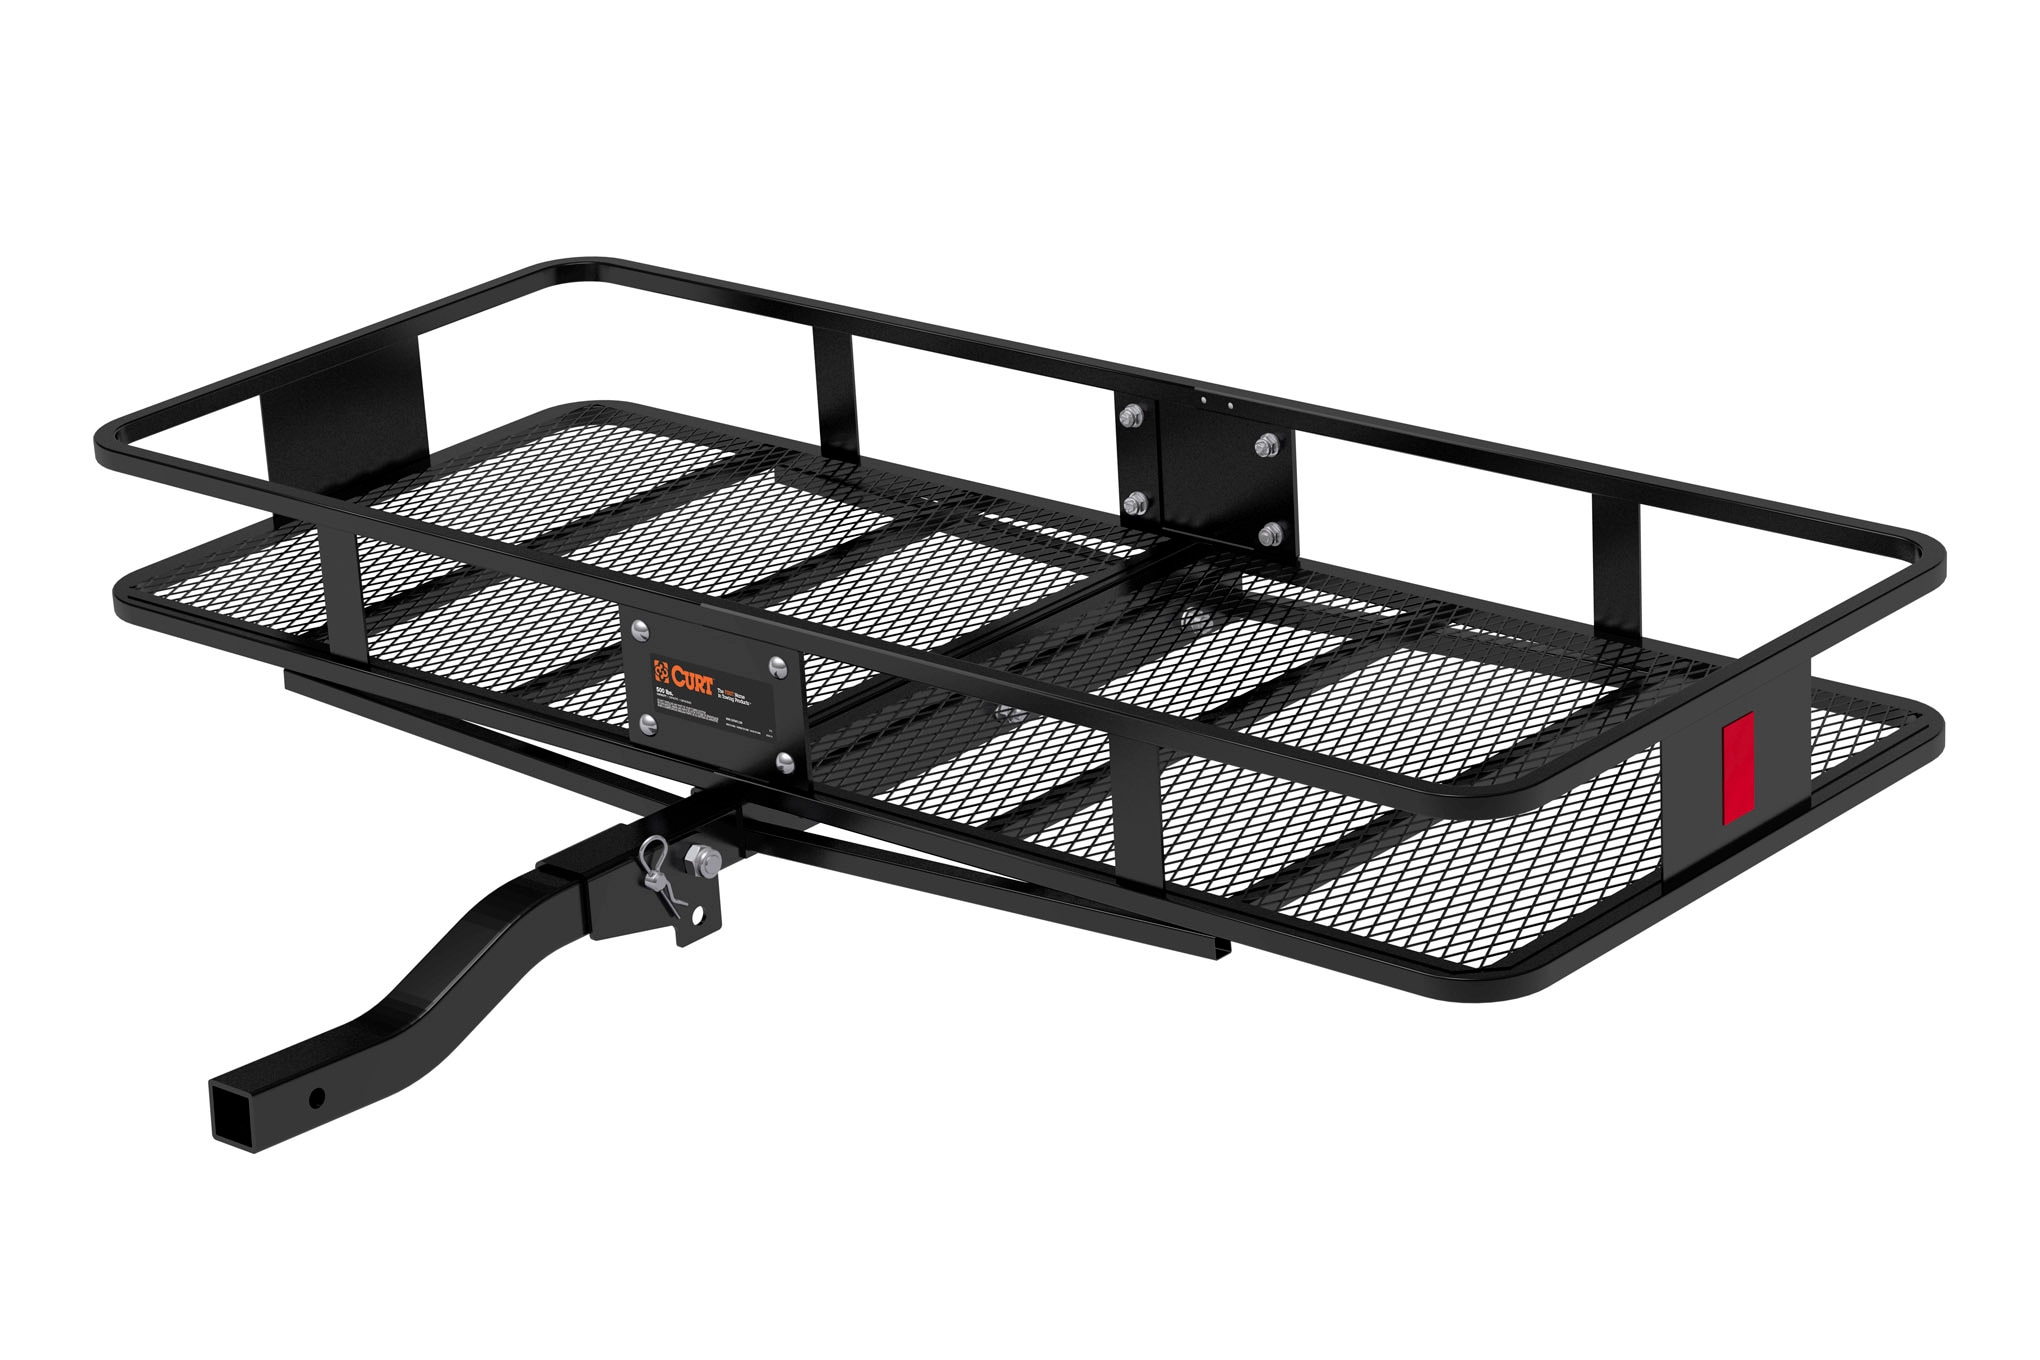 Four Wheeler Cargo Guide Curt Mfg Basket Style Carrier Photo 228729485